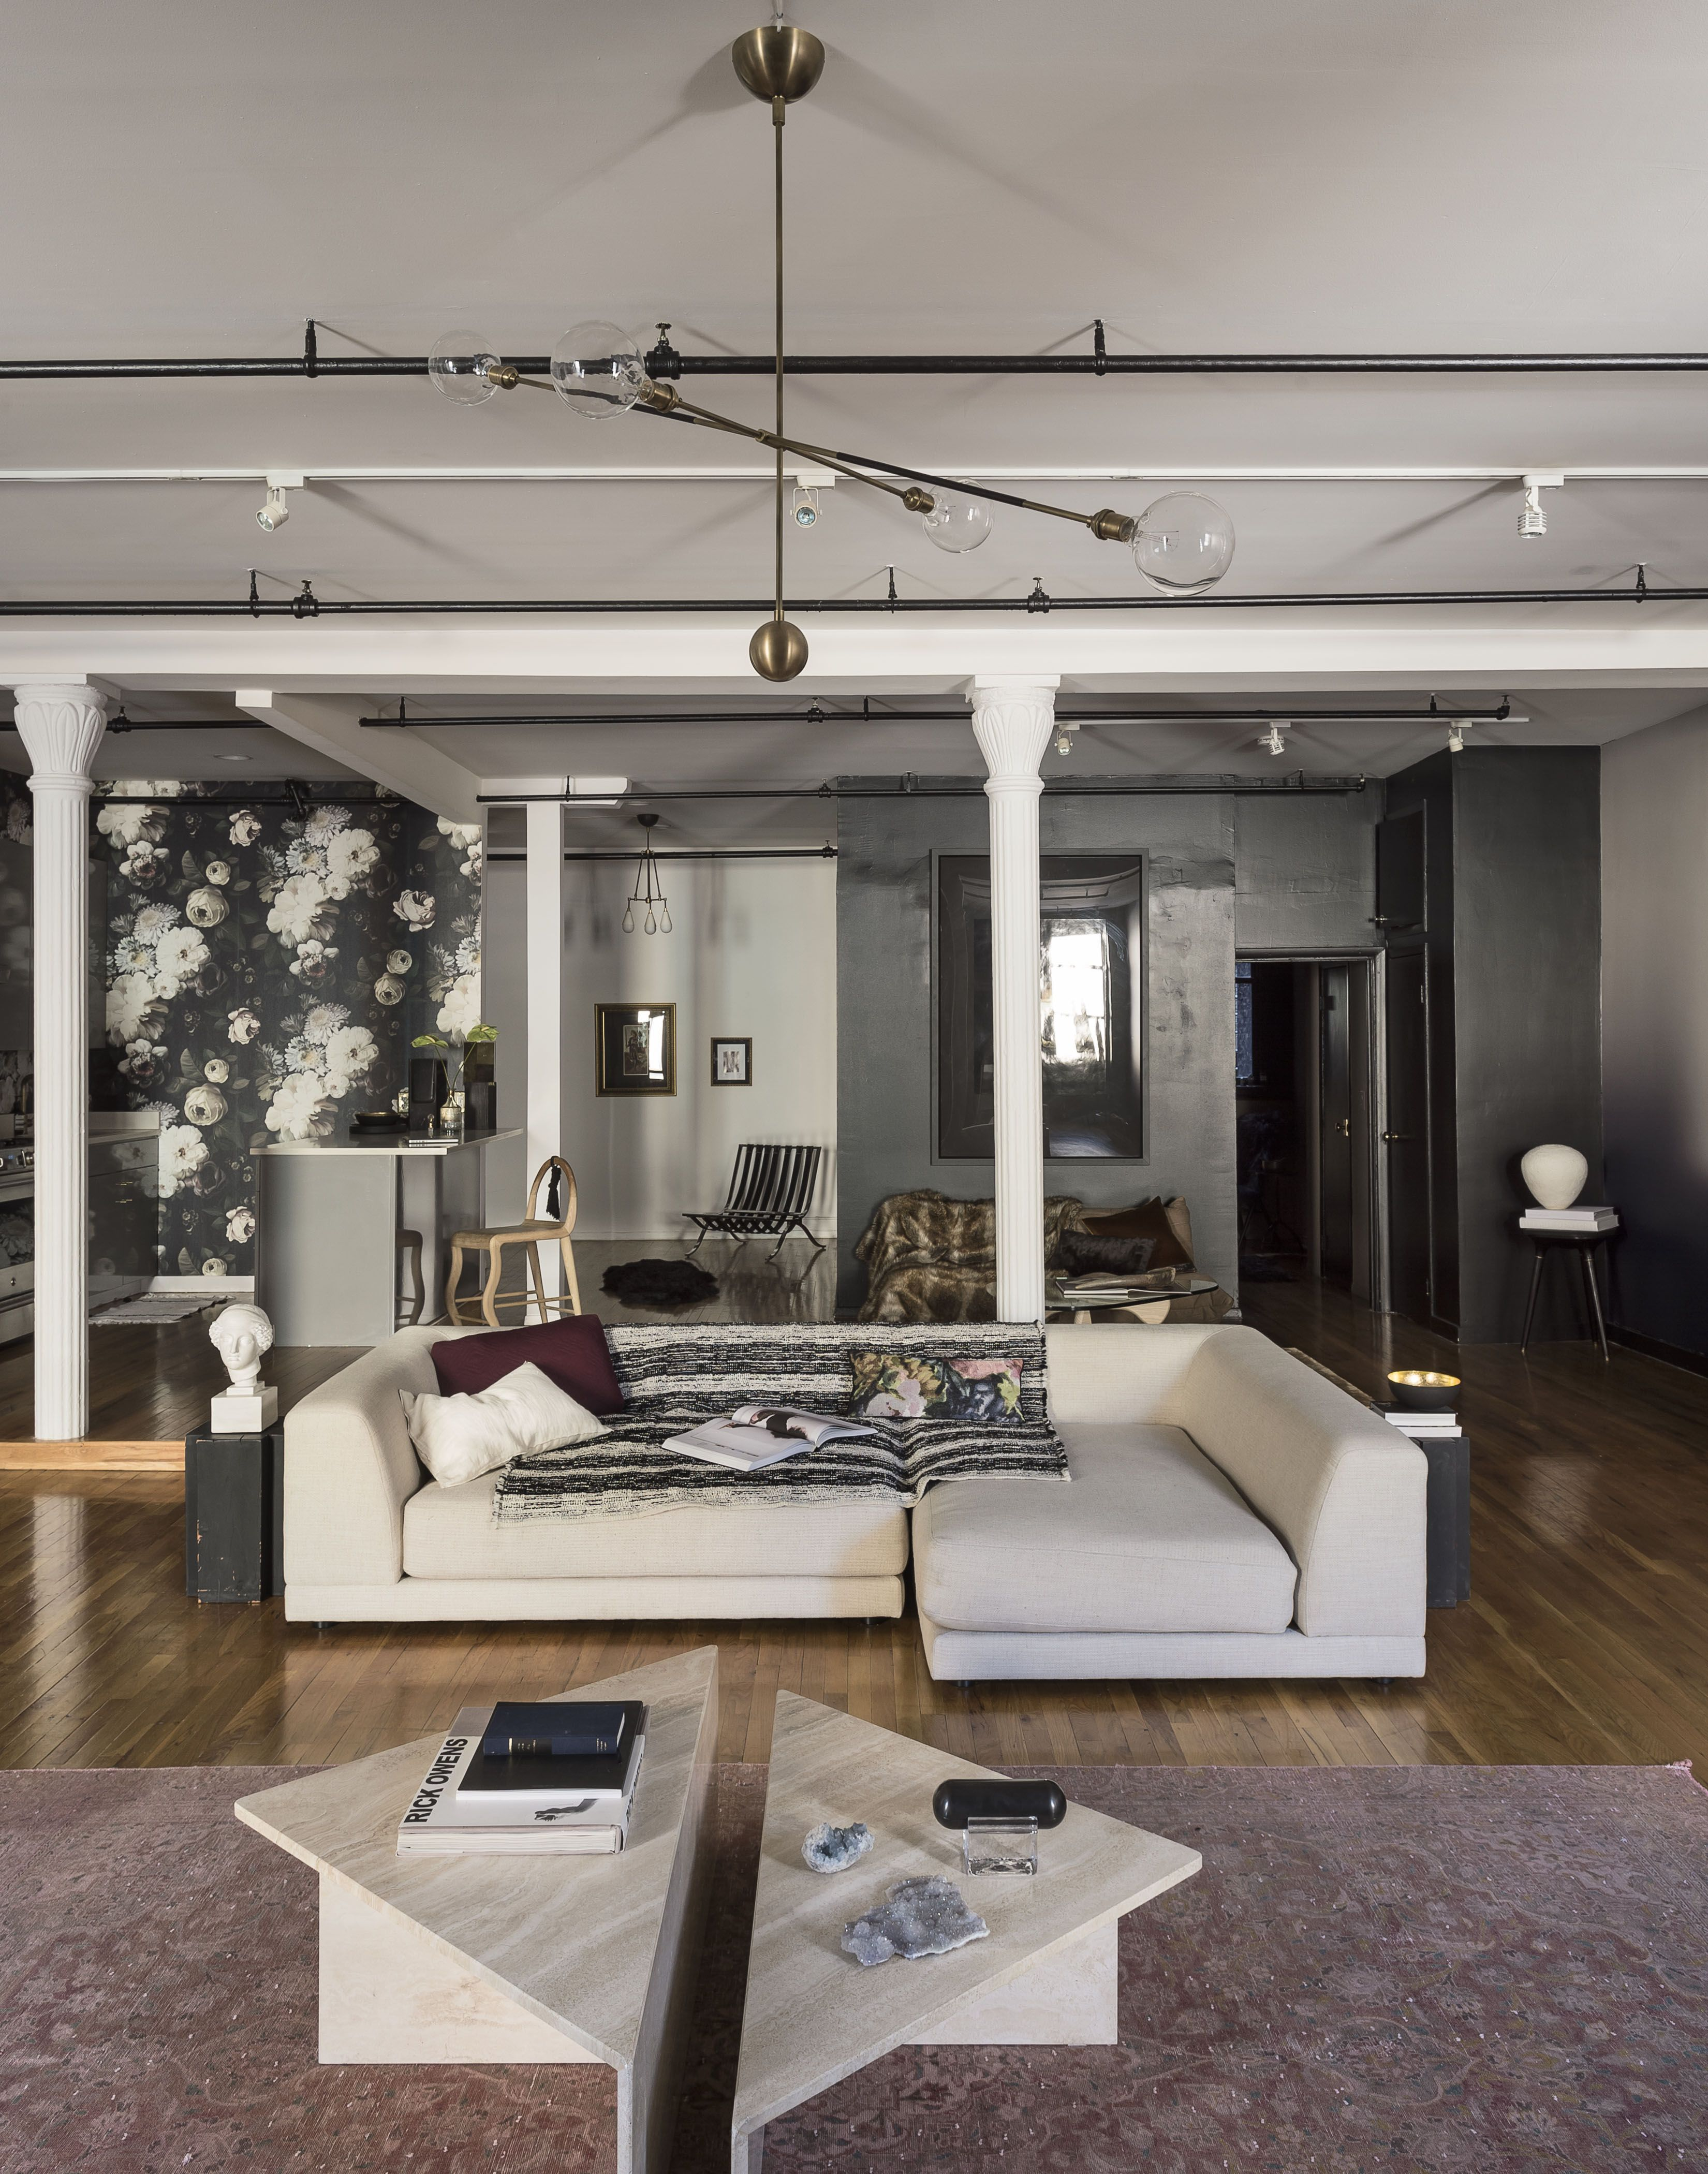 Industrial Modern House The Loft Apartment In TriBeCa New York